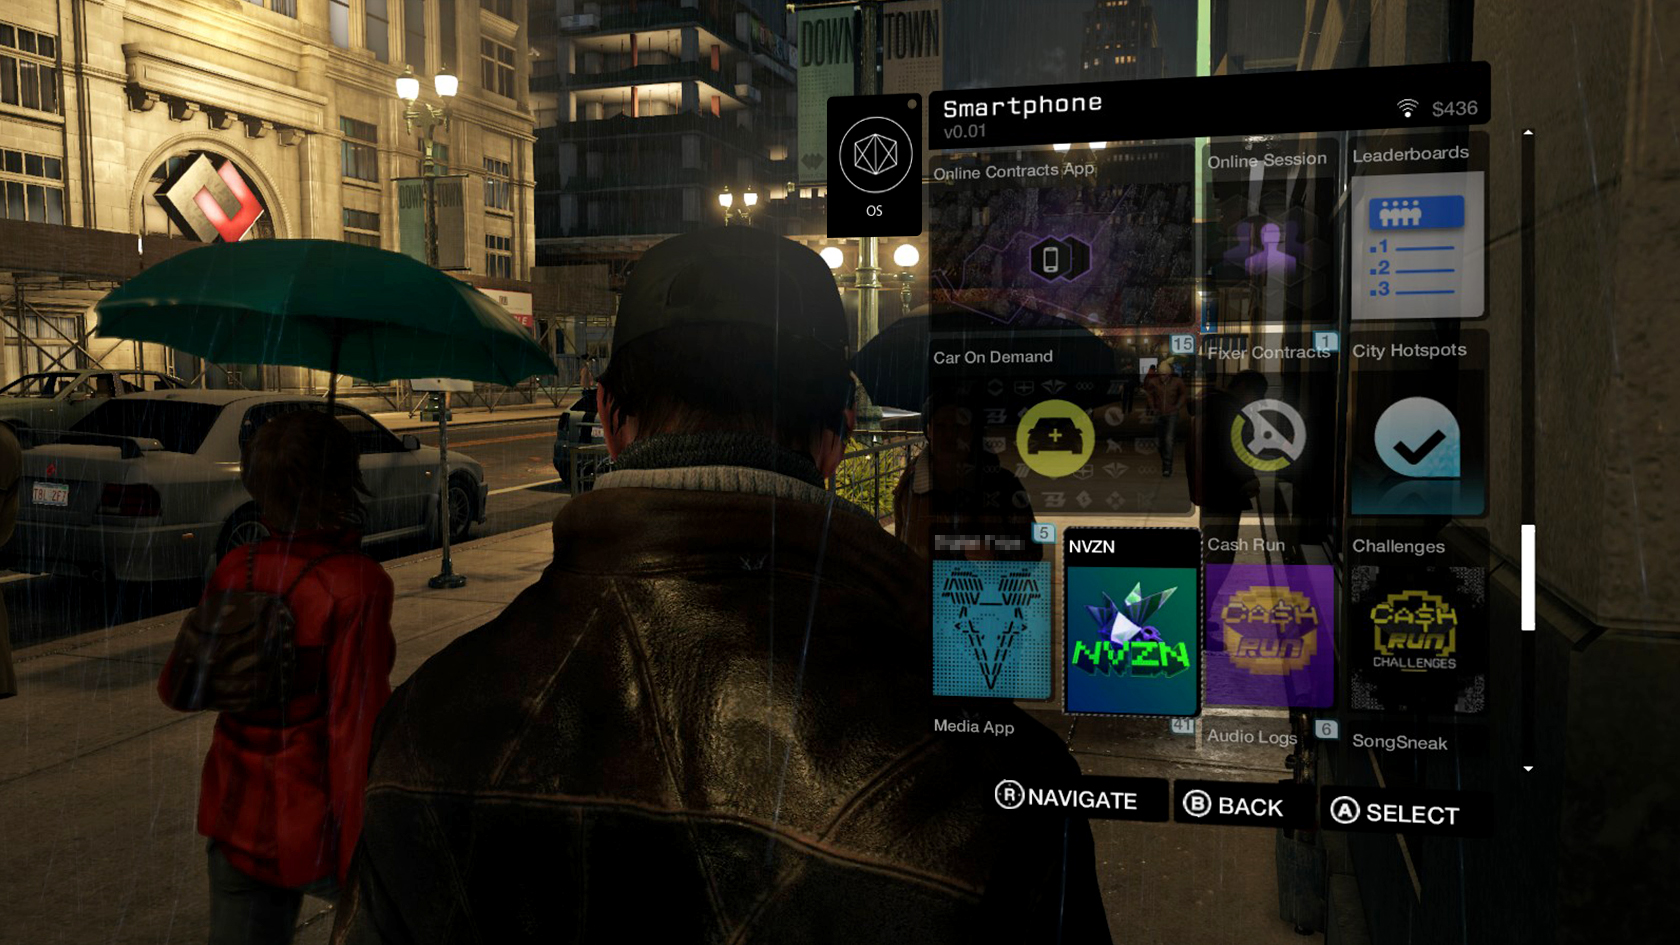 Watch Dogs Screen Appears To Include Links To Assassins Creed Series VG247